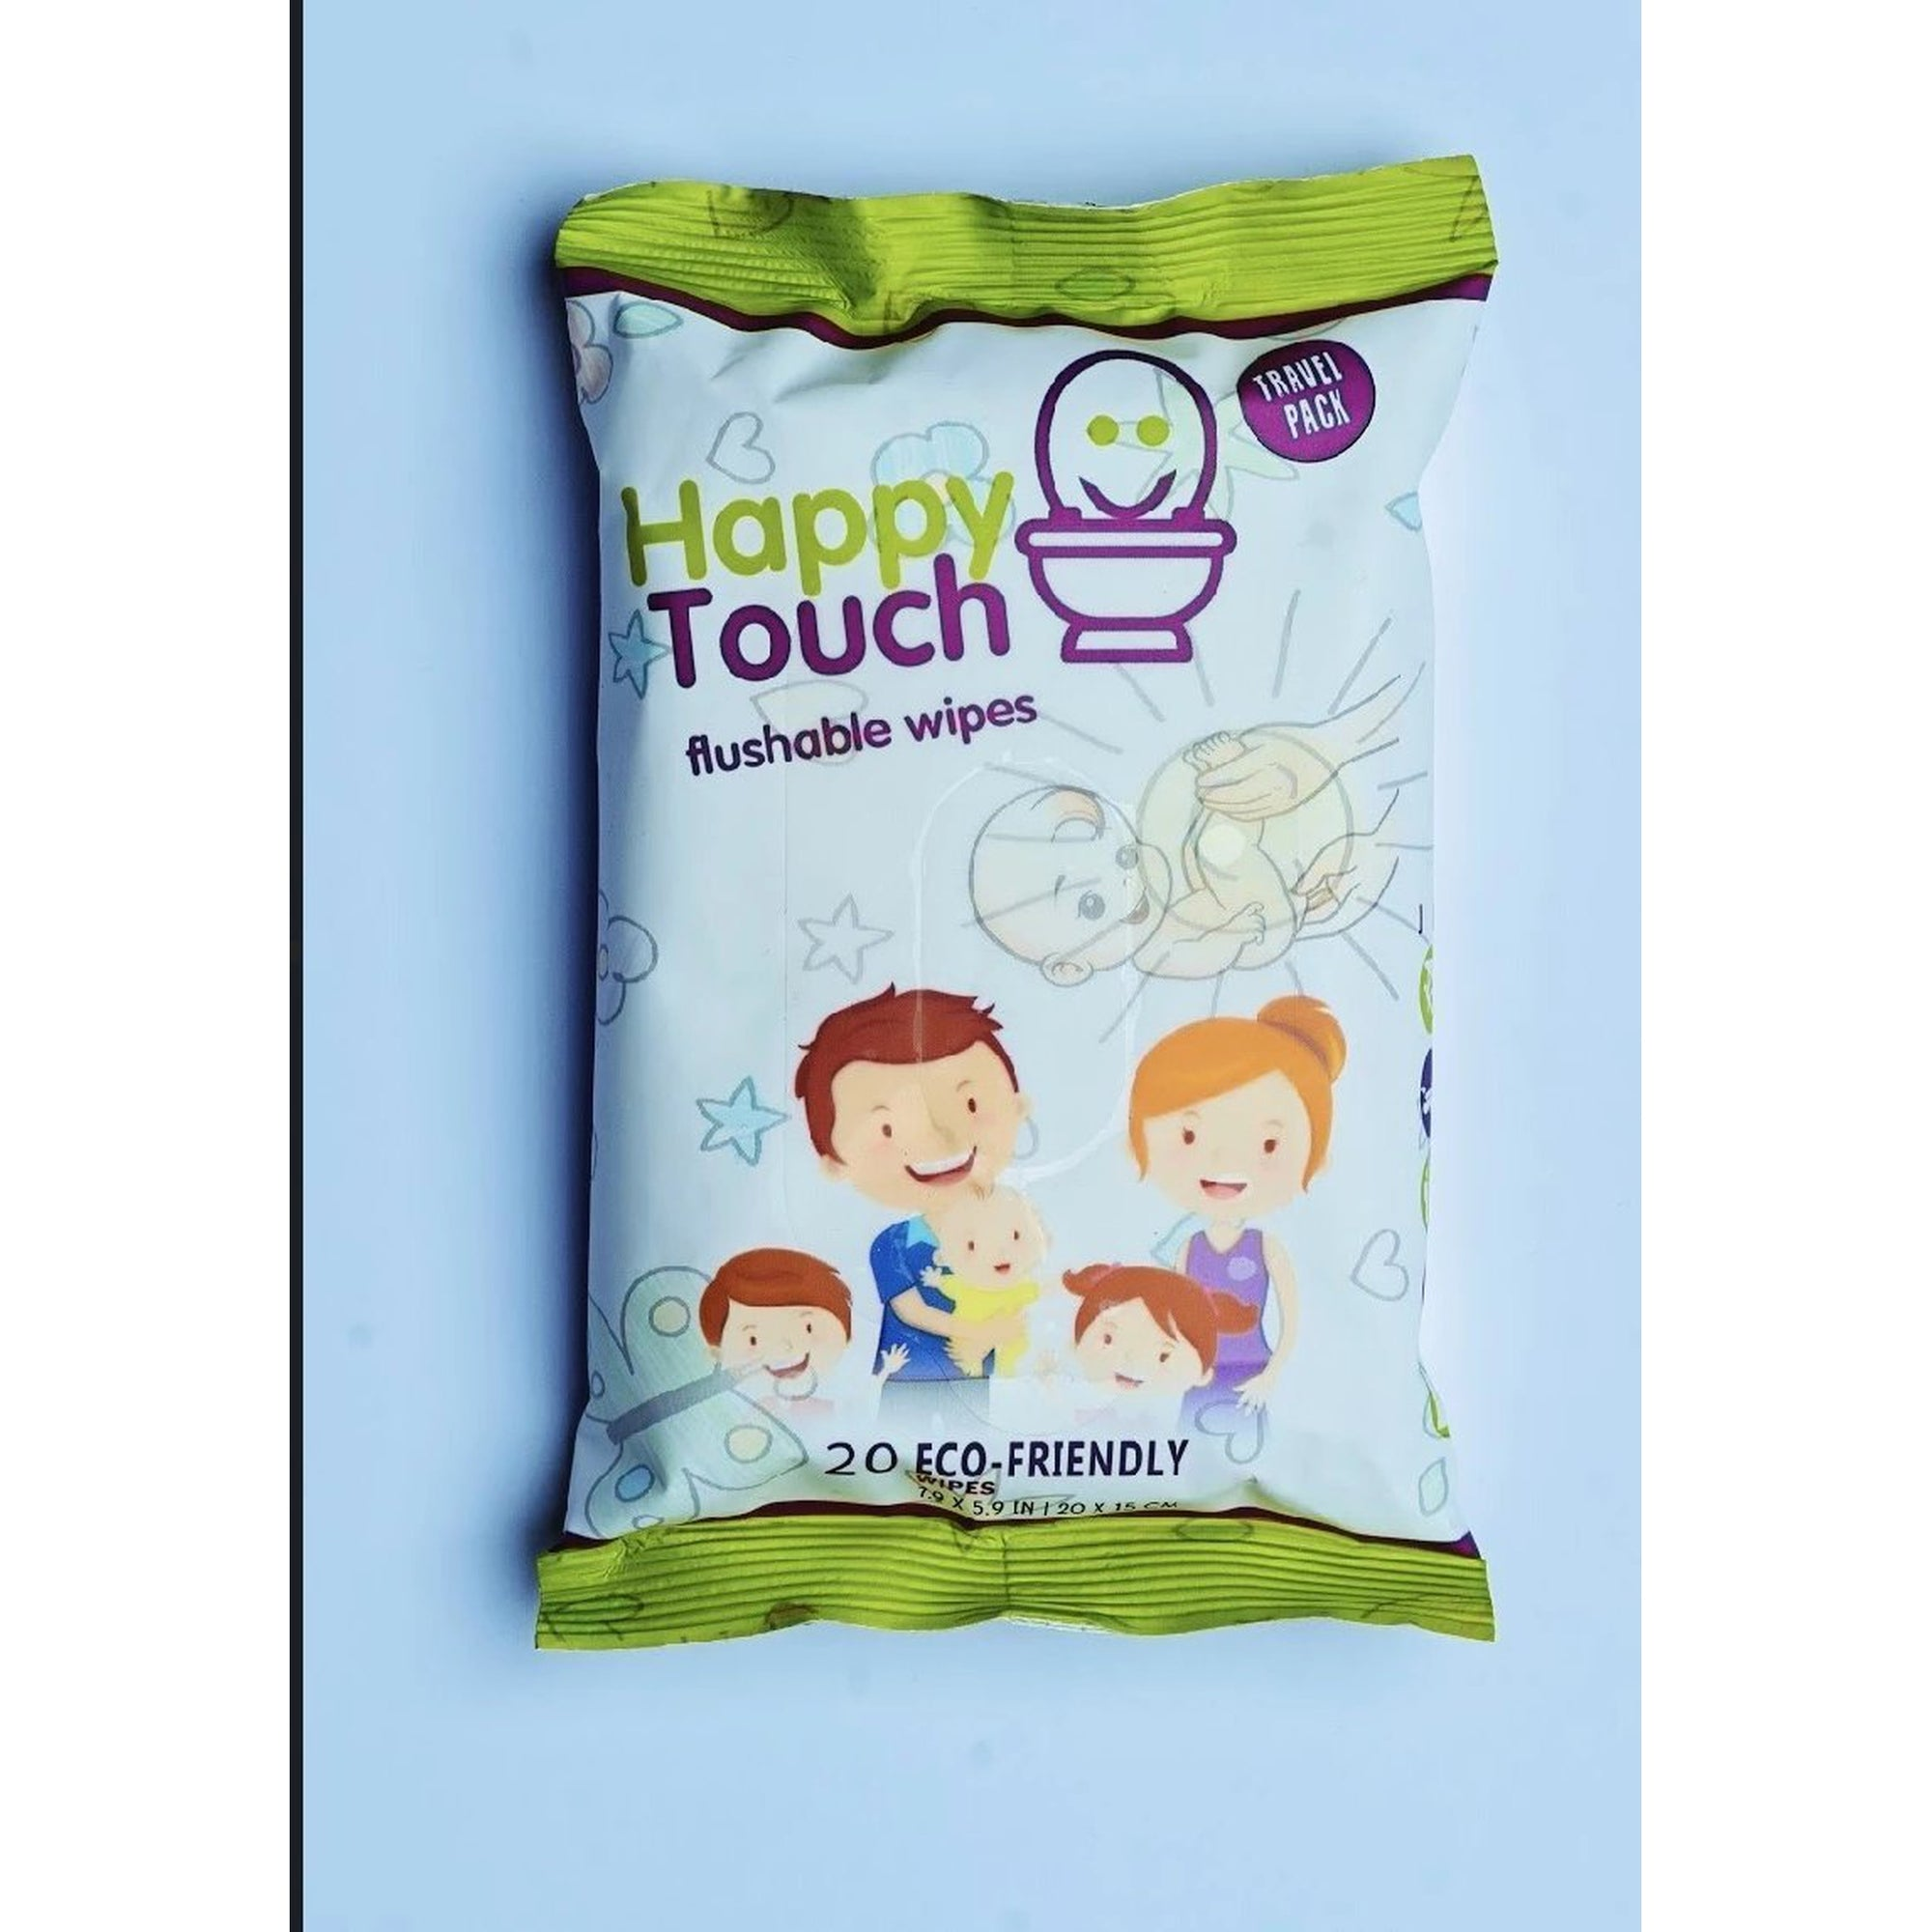 Happy Touch Flushable Wipes 20s (Aloe Vera)-Wipes-Mother and Baby Shop Kenya's #1 Online Baby Shop